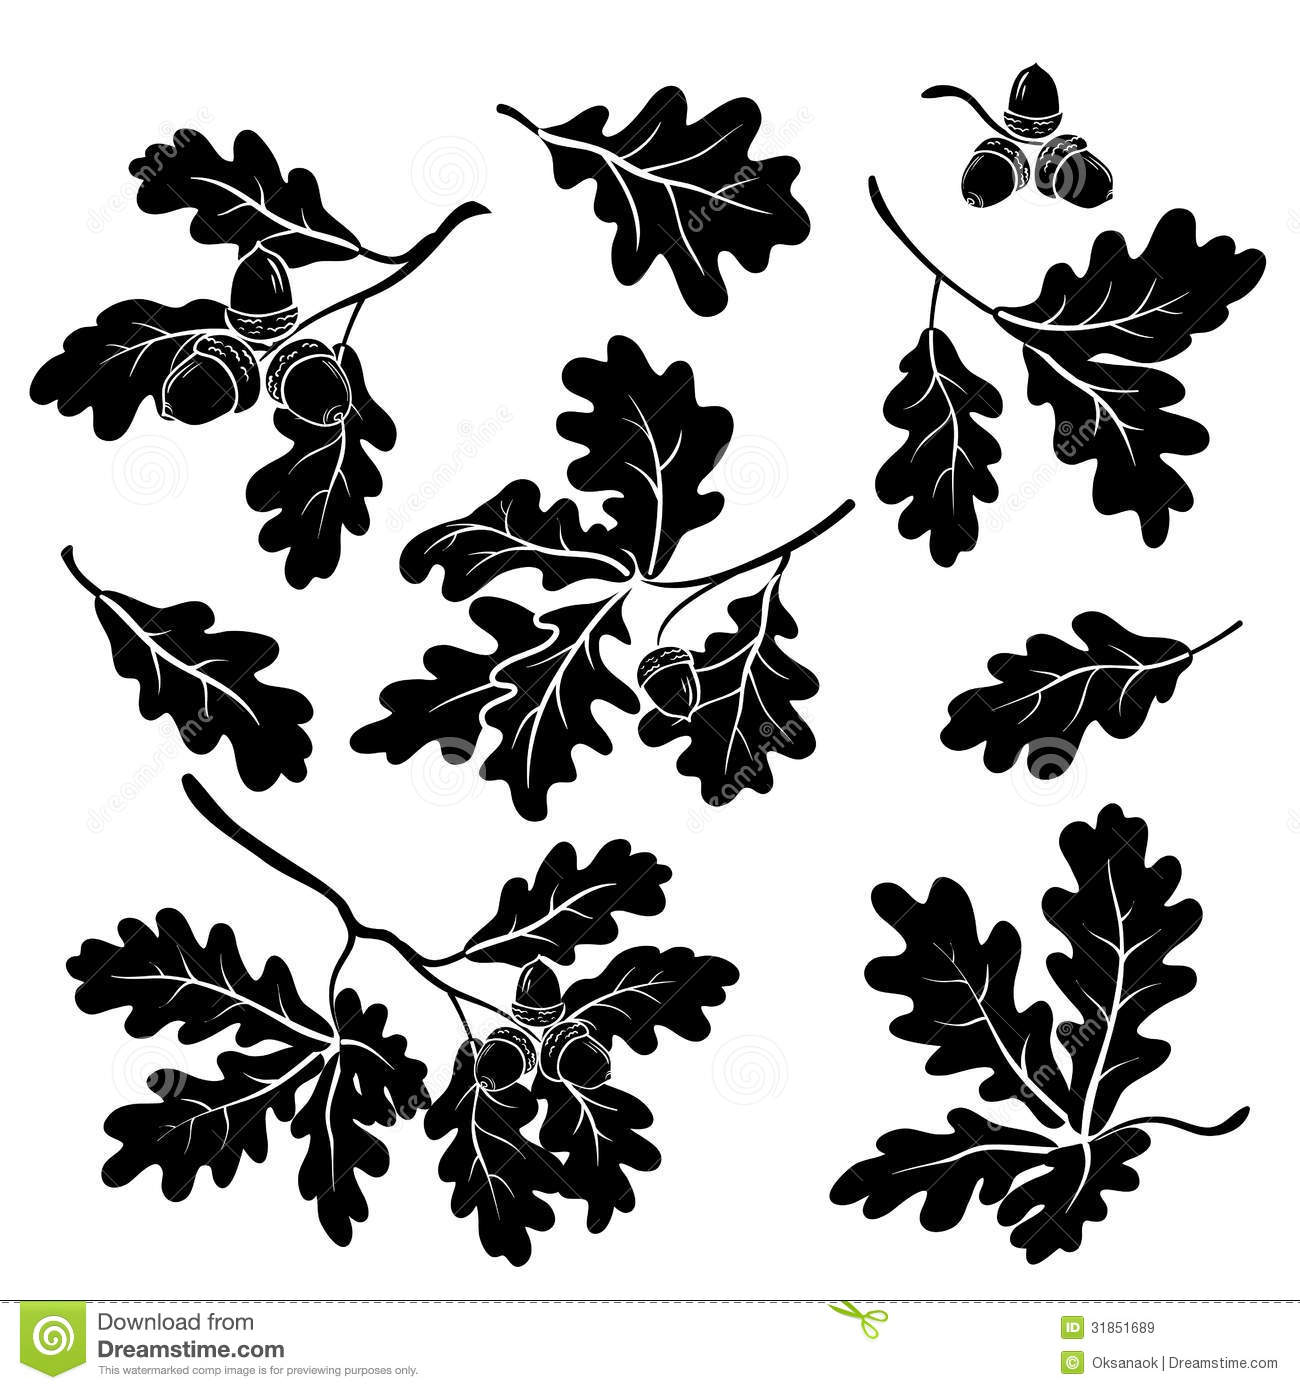 Oak Branches With Acorns, Silhouettes Royalty Free Stock Images ...